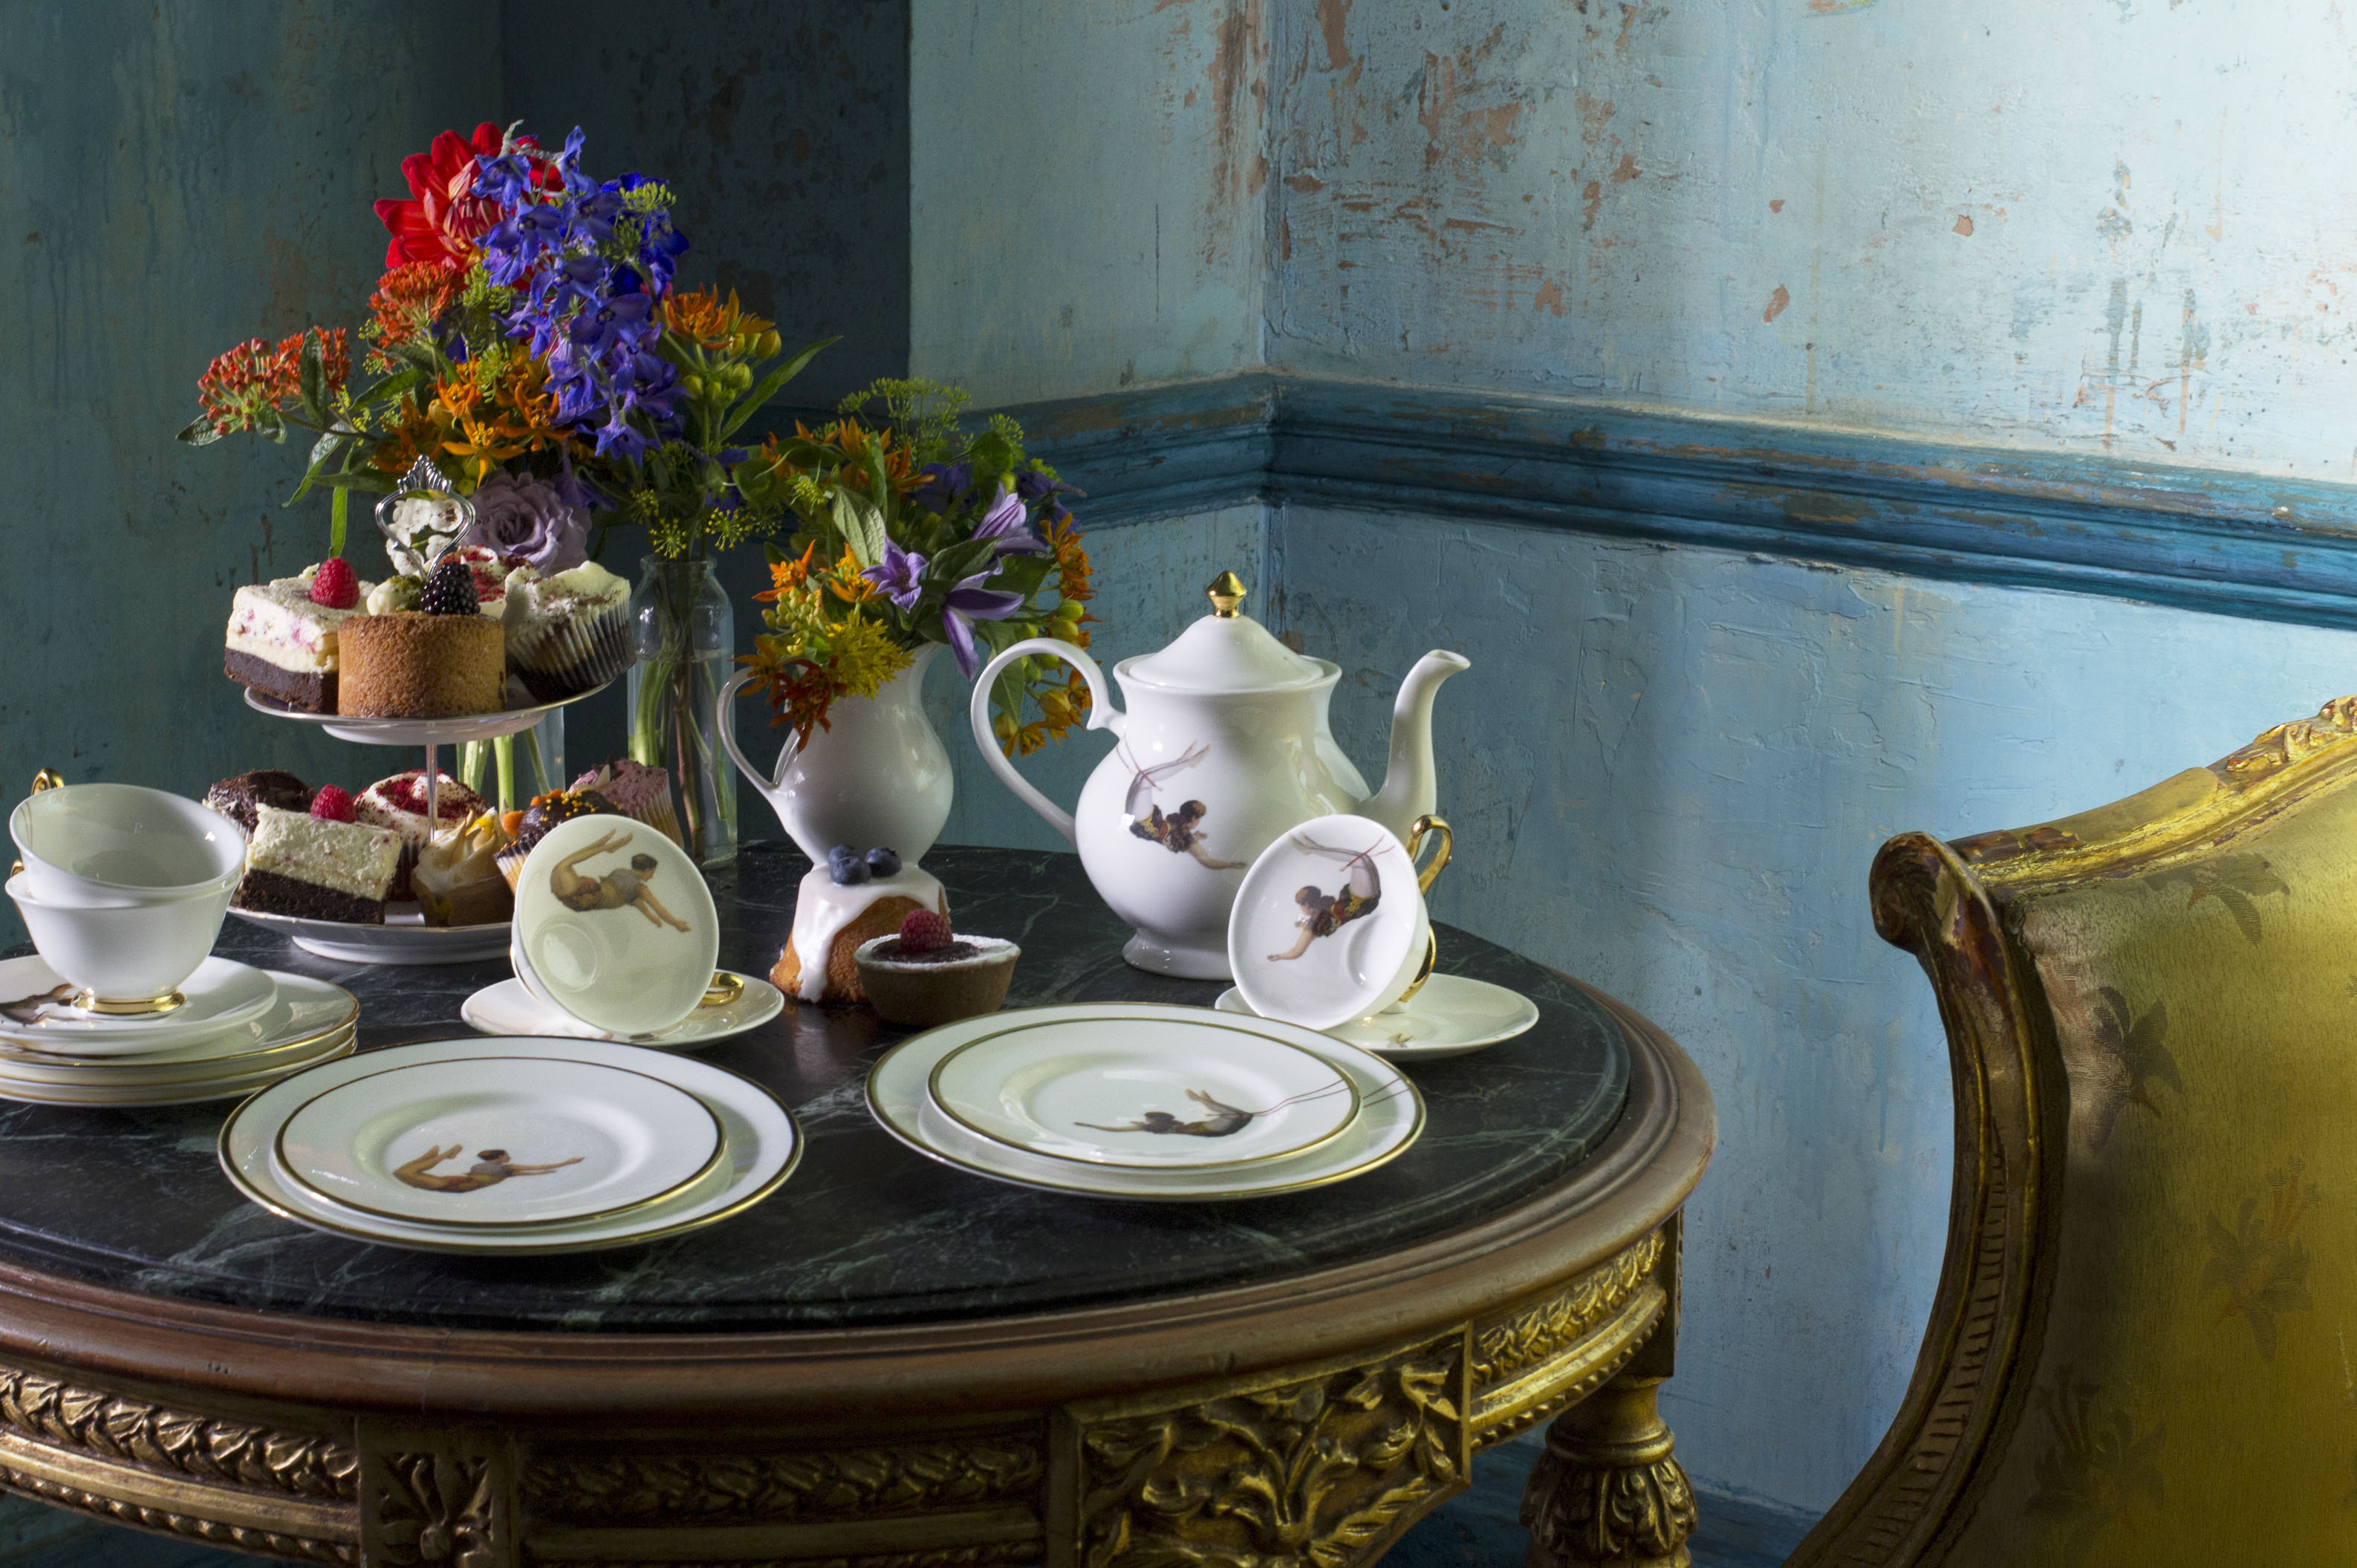 """The Melody Rose brand is known for high quality, contemporary bone china tableware with an elegant twist."" (www.melodyrose.co.uk)"